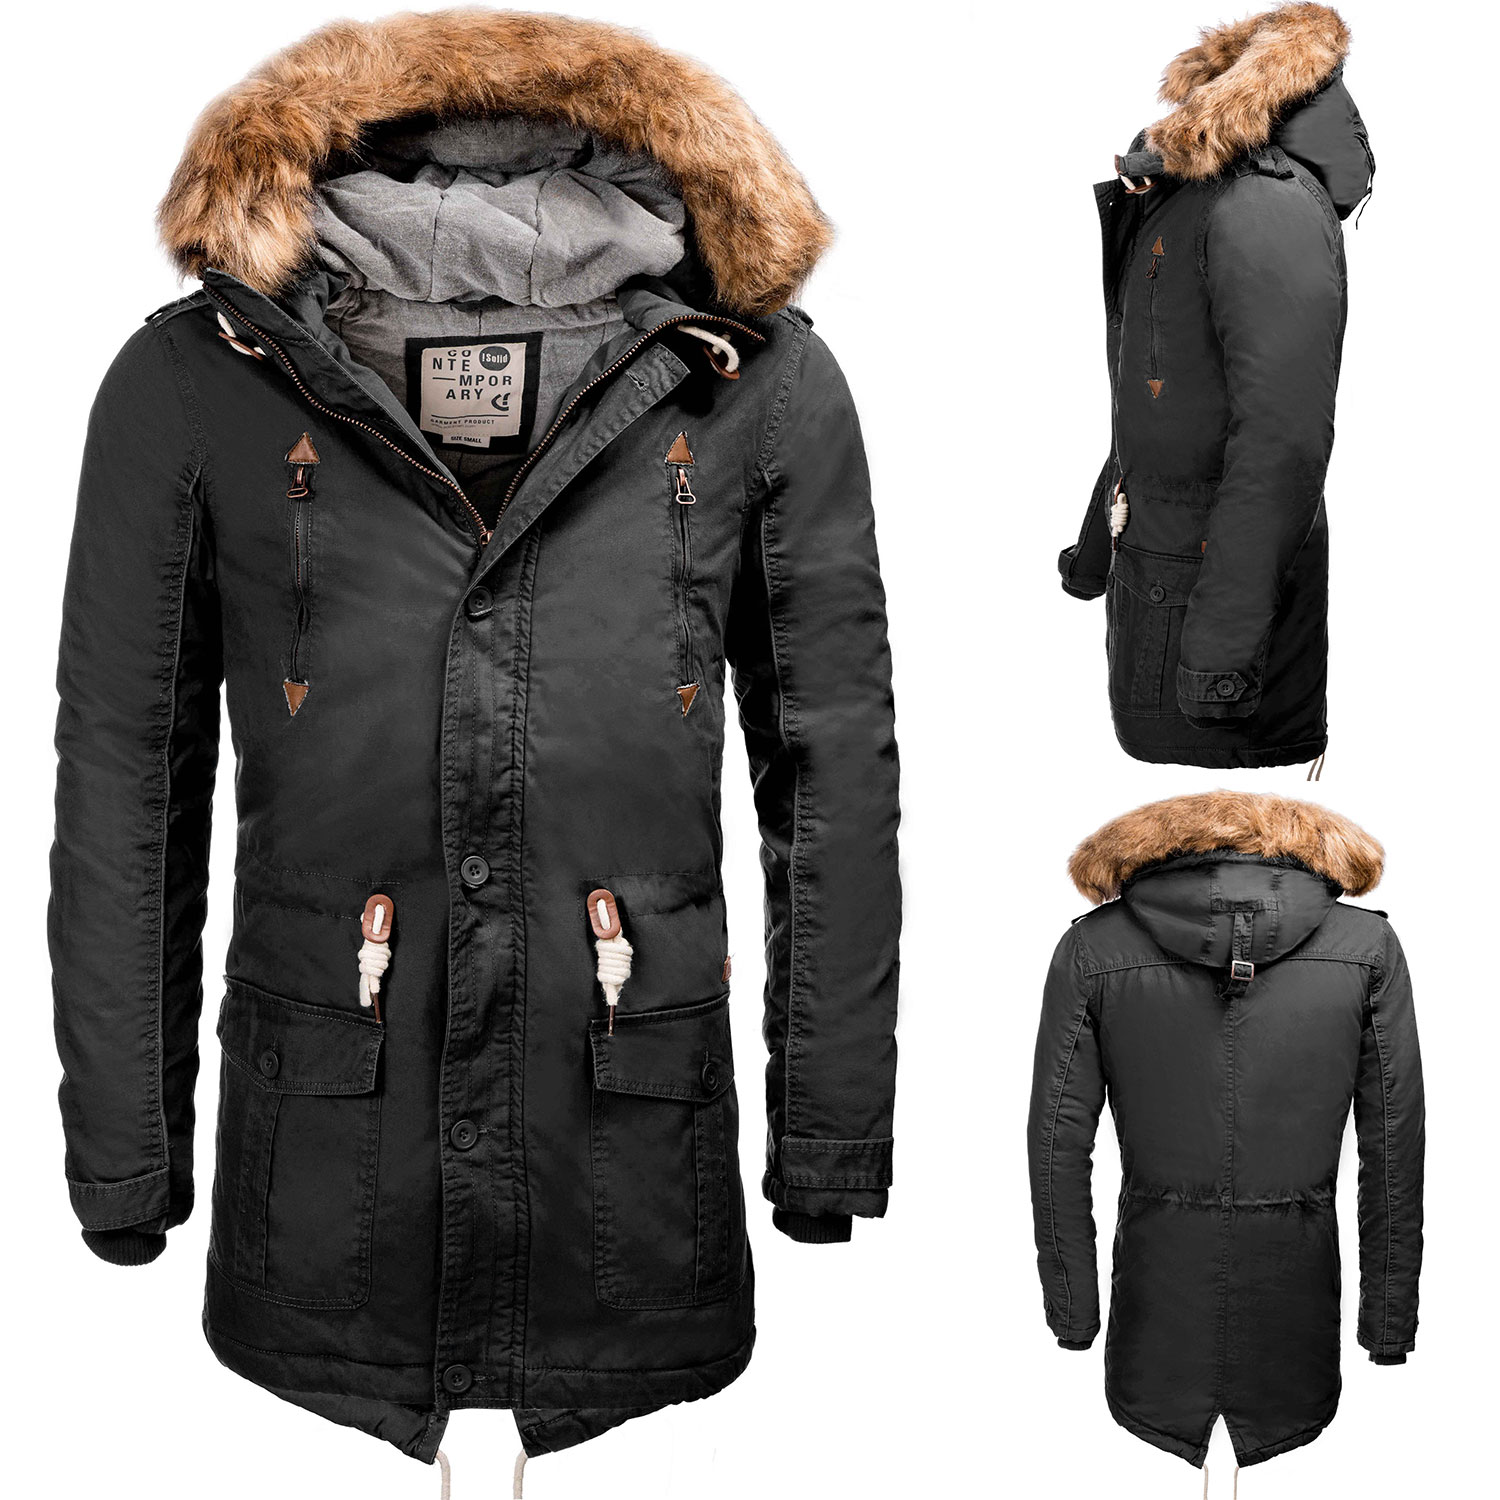 solid herren winter parka kapuze winter jacke kunstfell mantel regenjacke weste ebay. Black Bedroom Furniture Sets. Home Design Ideas